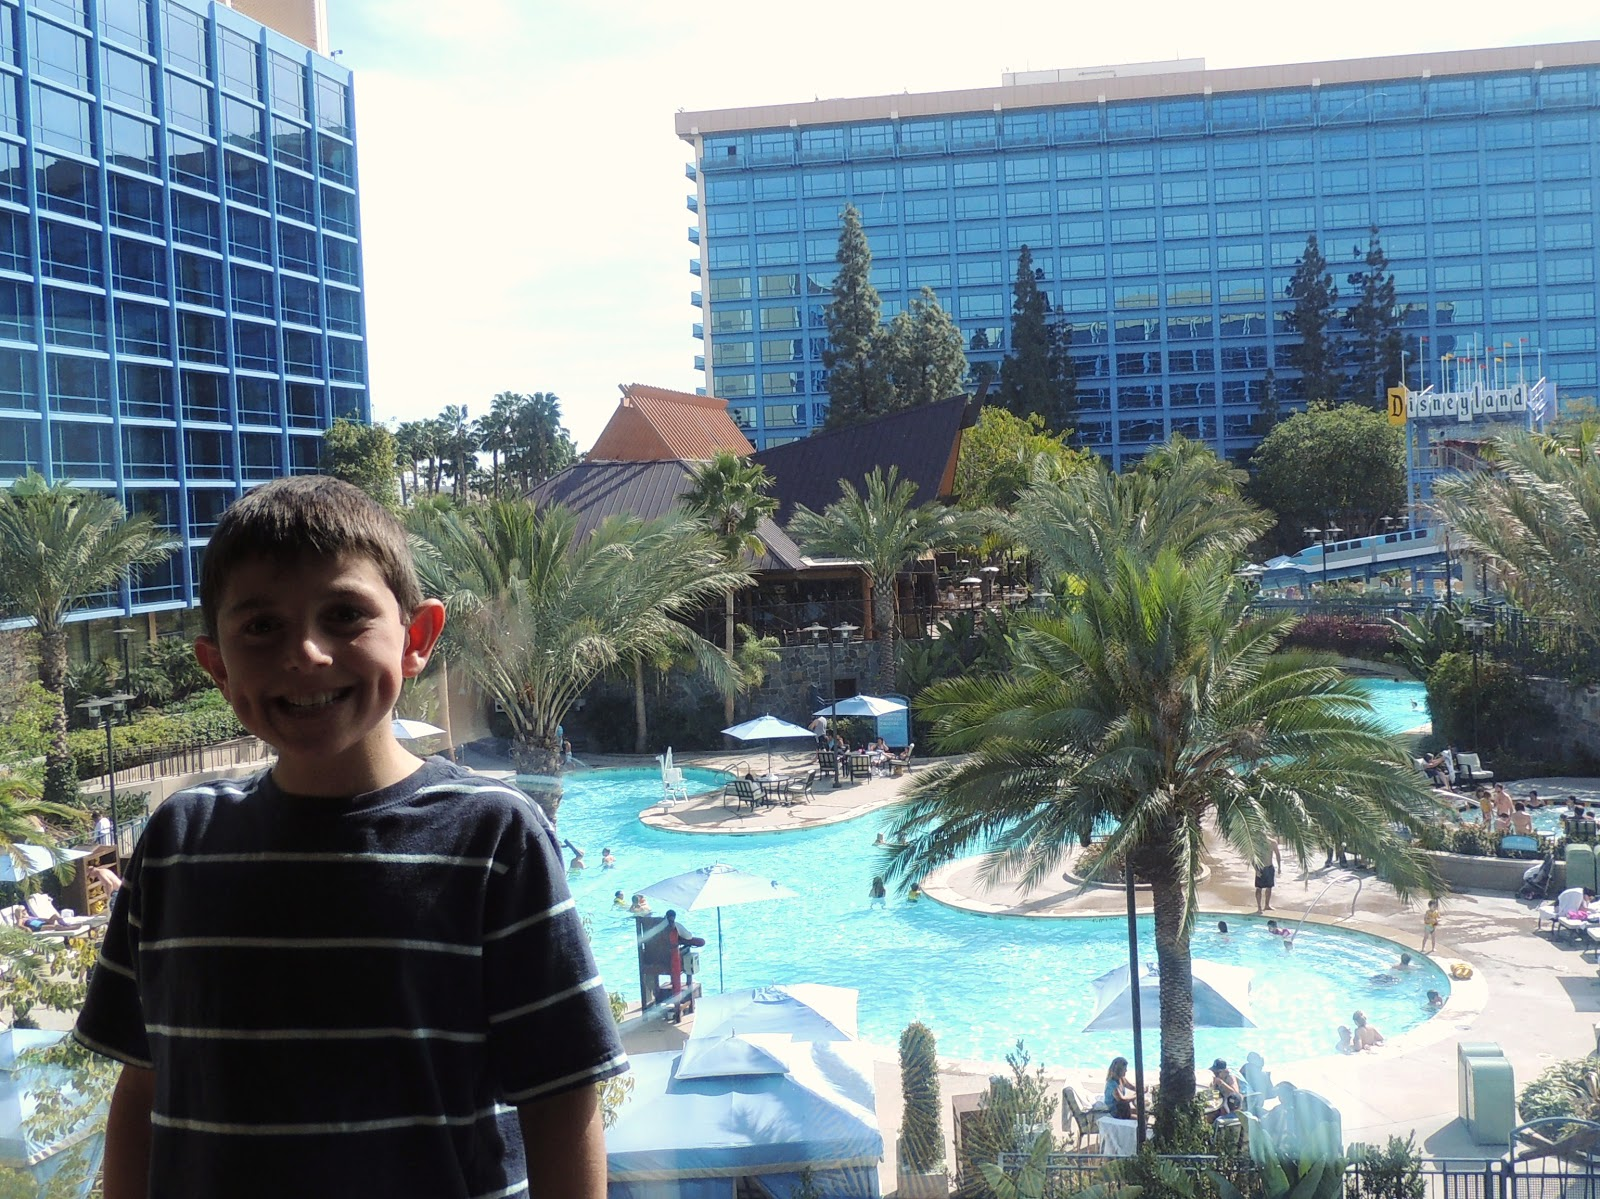 1000 Hikes in 1000 Days: Day 837: Downtown Disney - Southwest ...